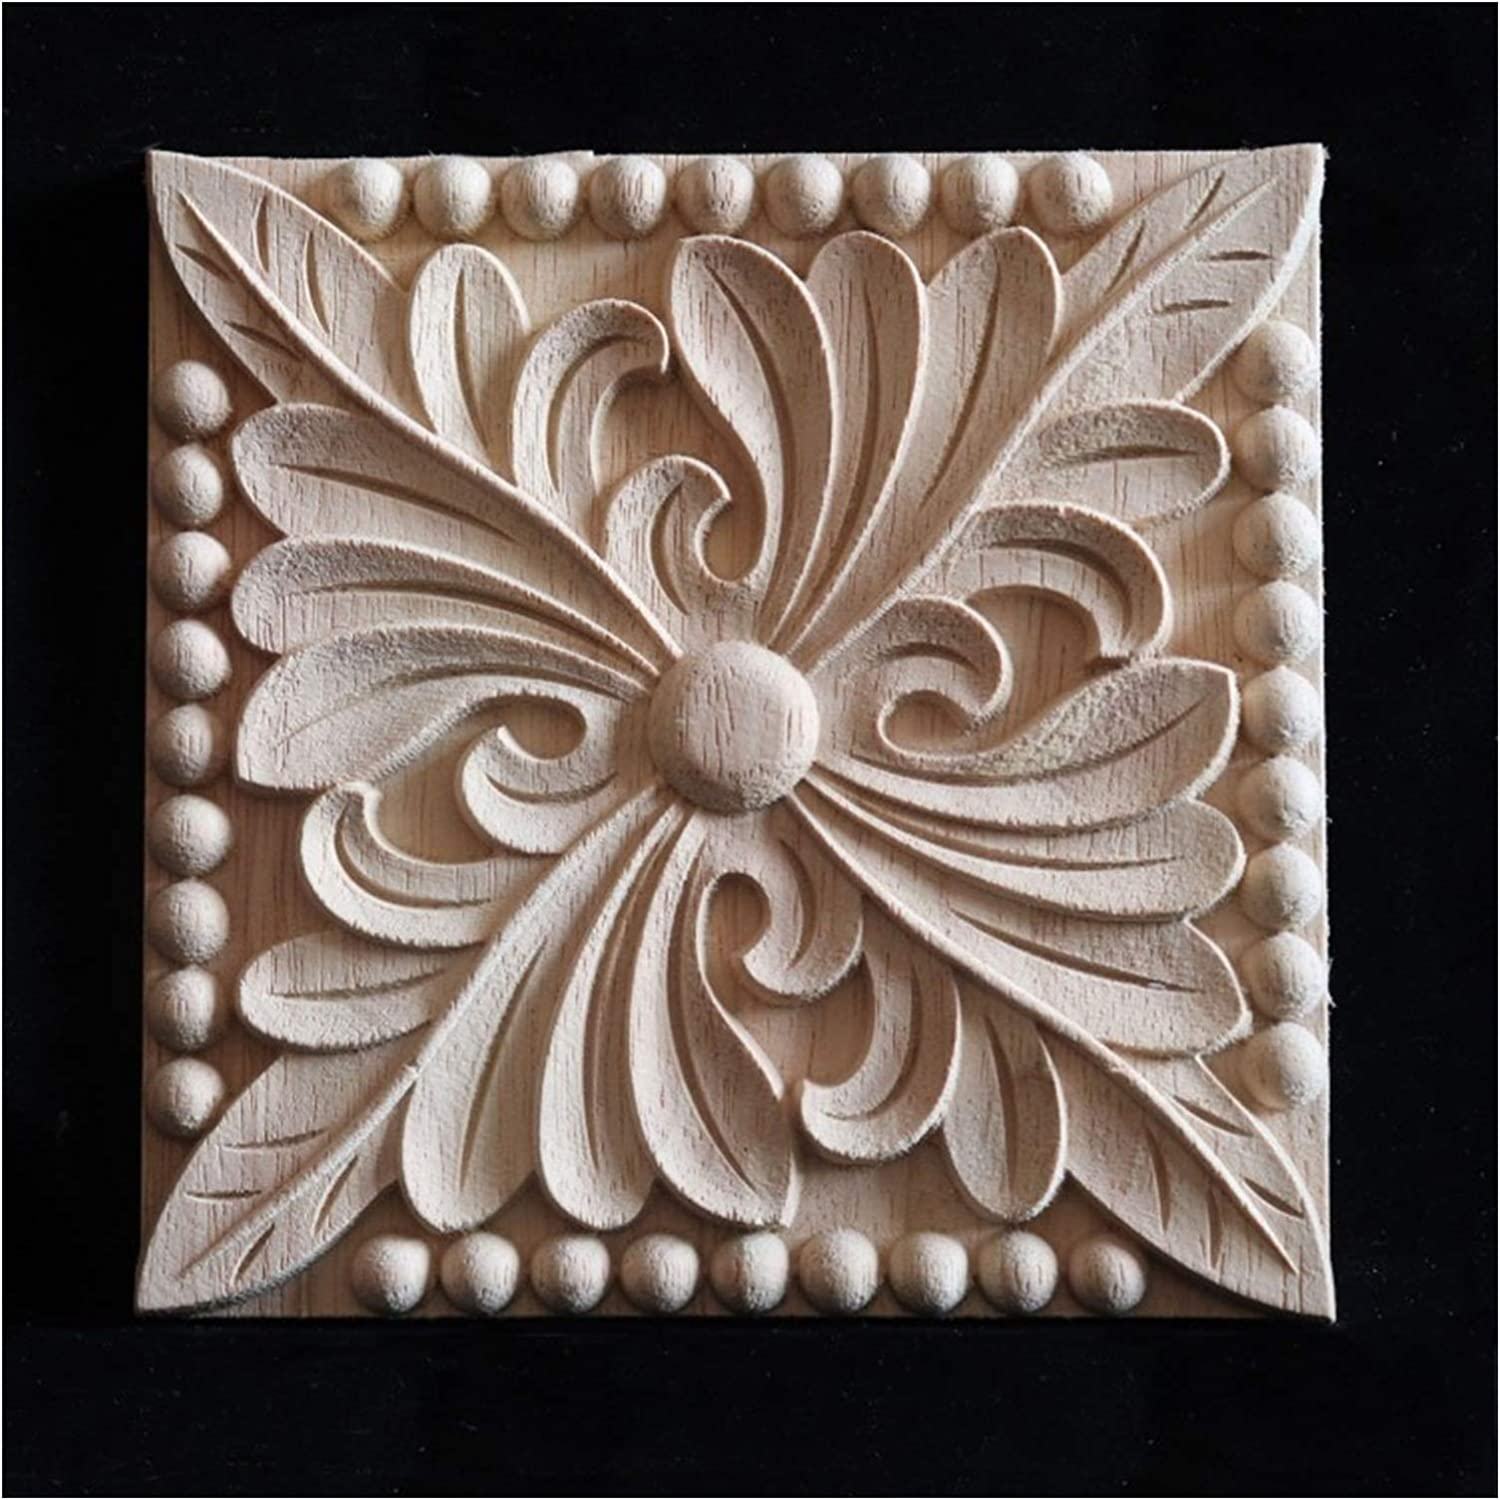 Furniture Stickers Popular standard 15CM Decal Wood Carving for Indefinitely Home Ce